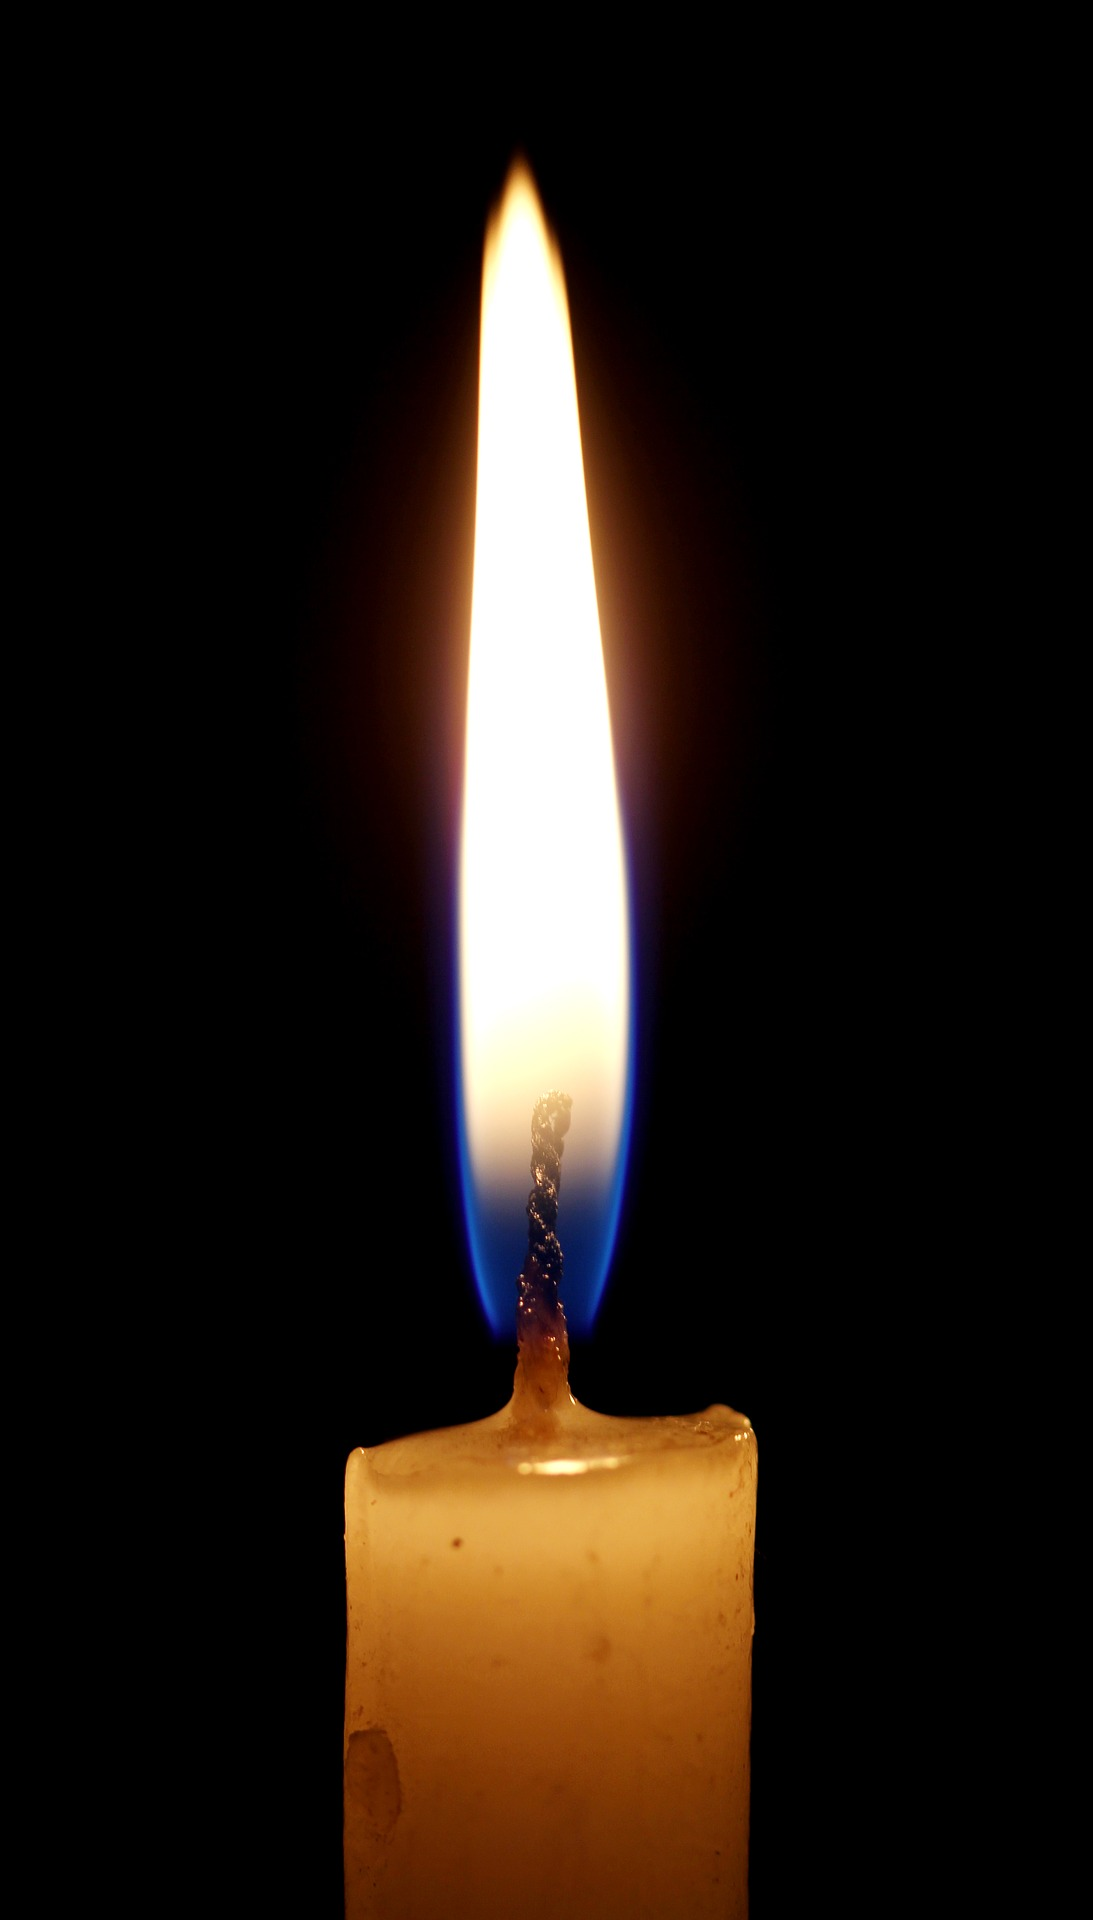 A candle lit in memory of a loved one.